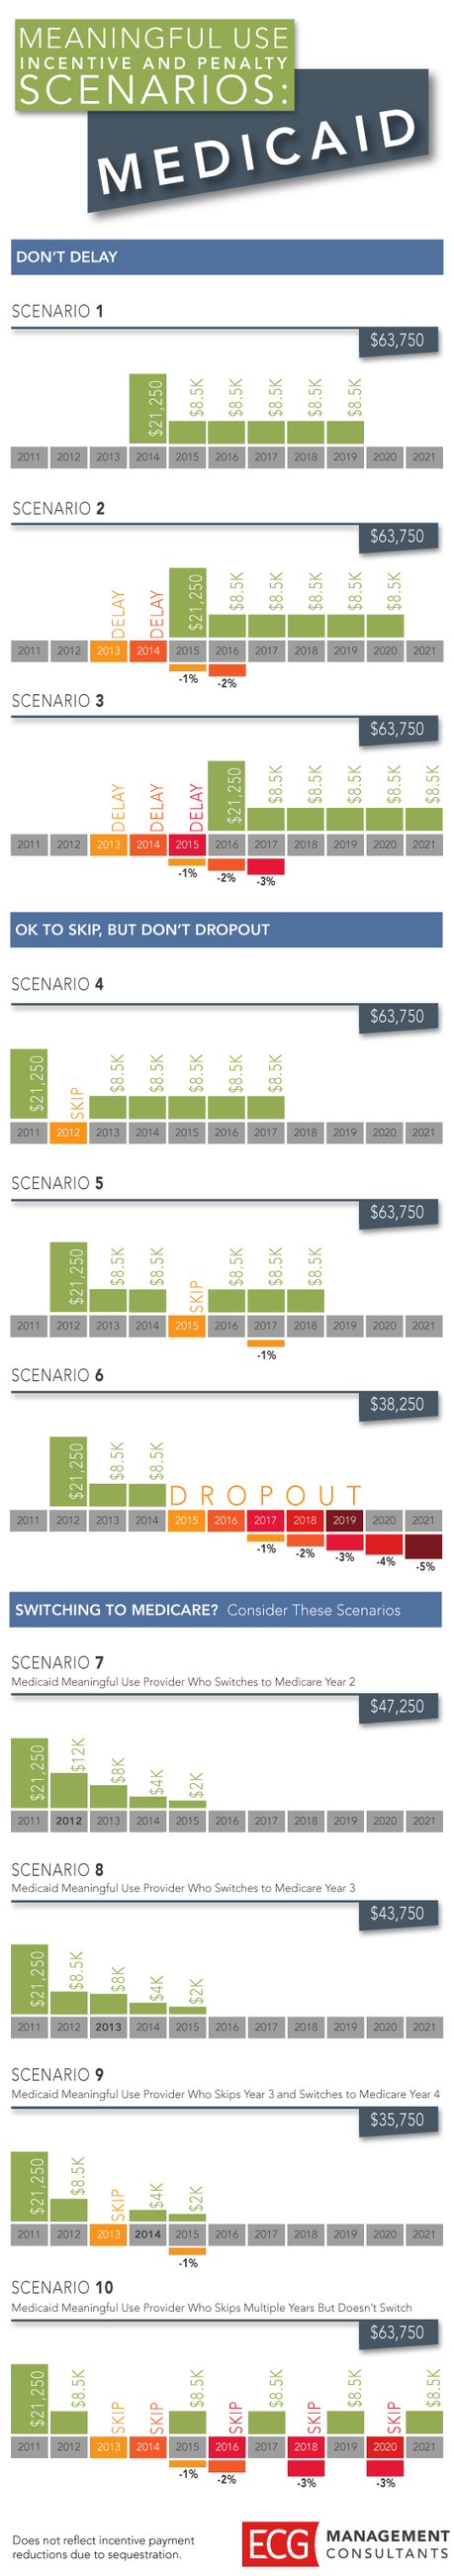 [Infographic] Meaningful Use Incentive and Penalty Scenarios - ECG ... | patient engagement | Scoop.it